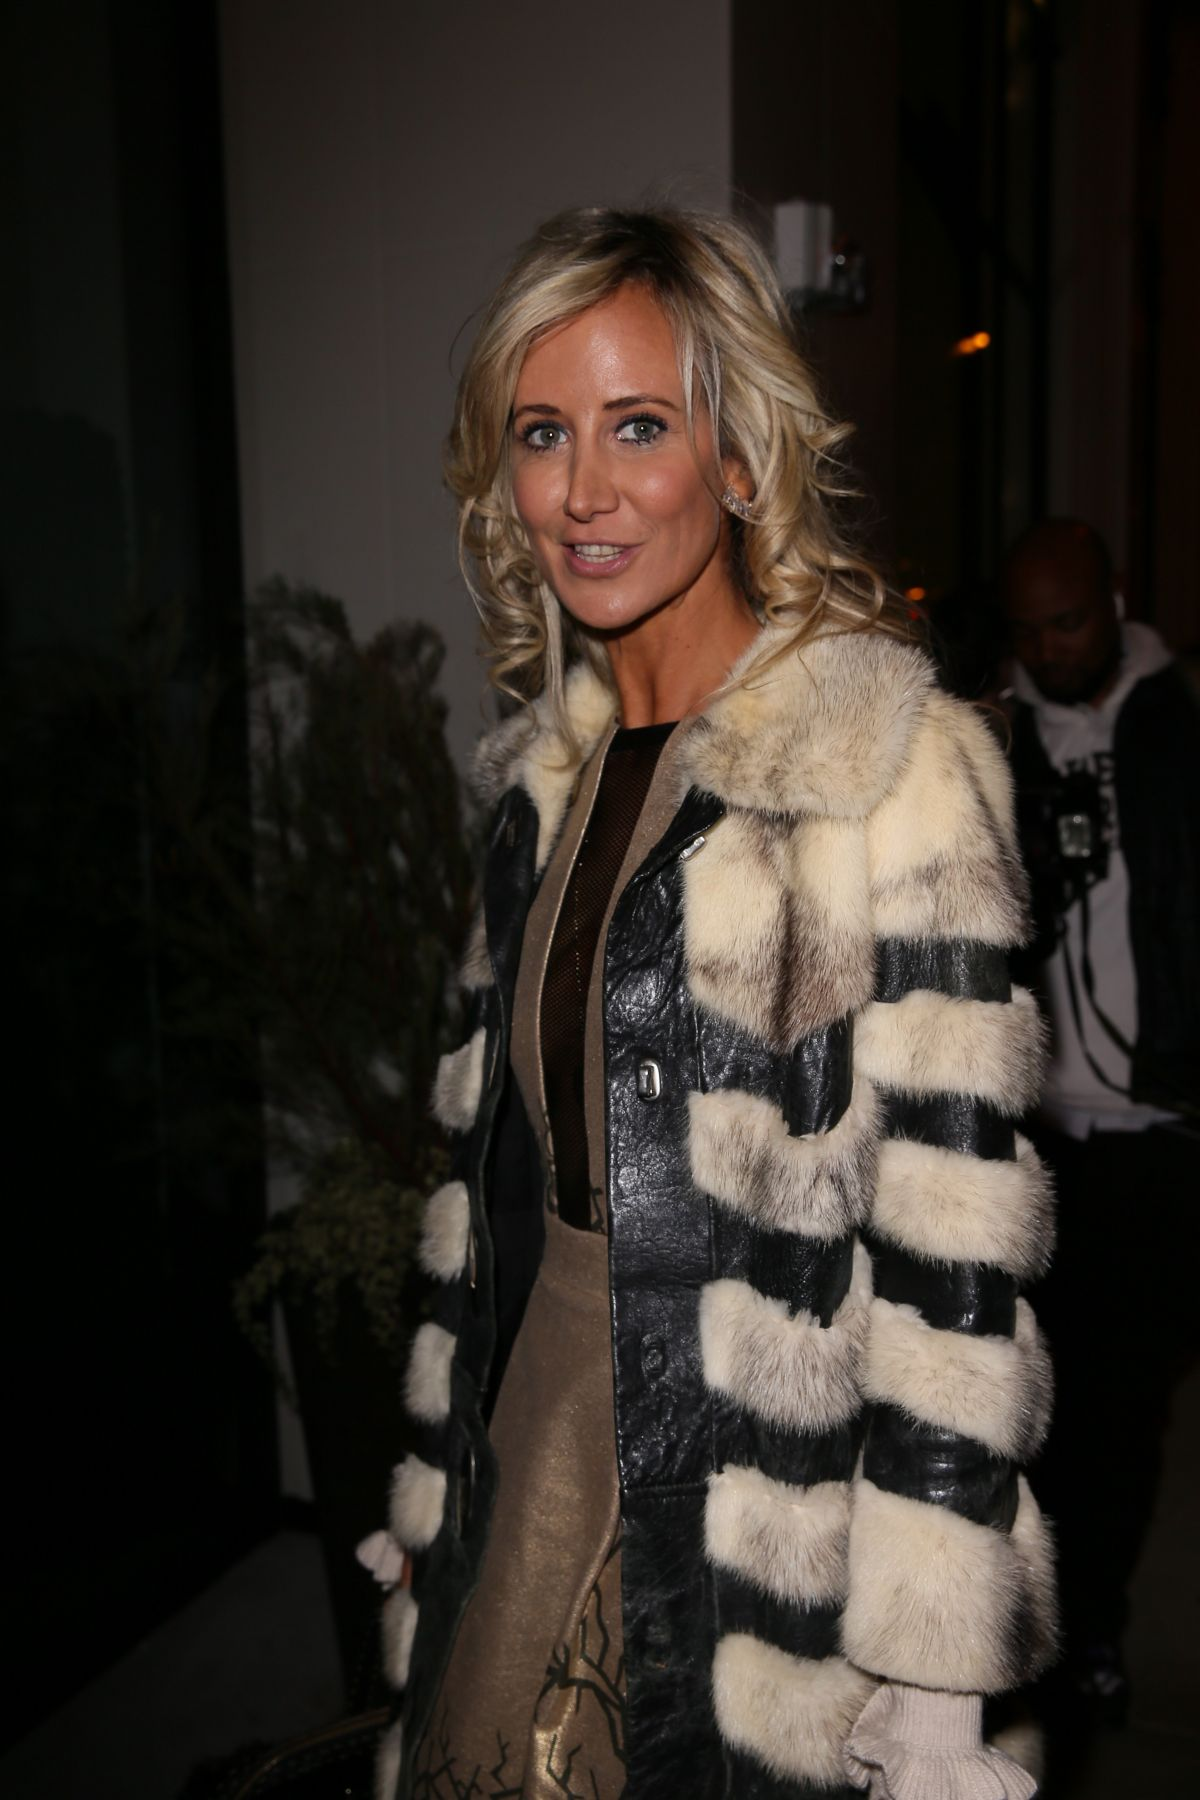 Lady victoria hervey at catch la in west hollywood naked (77 photo), Cleavage Celebrites picture